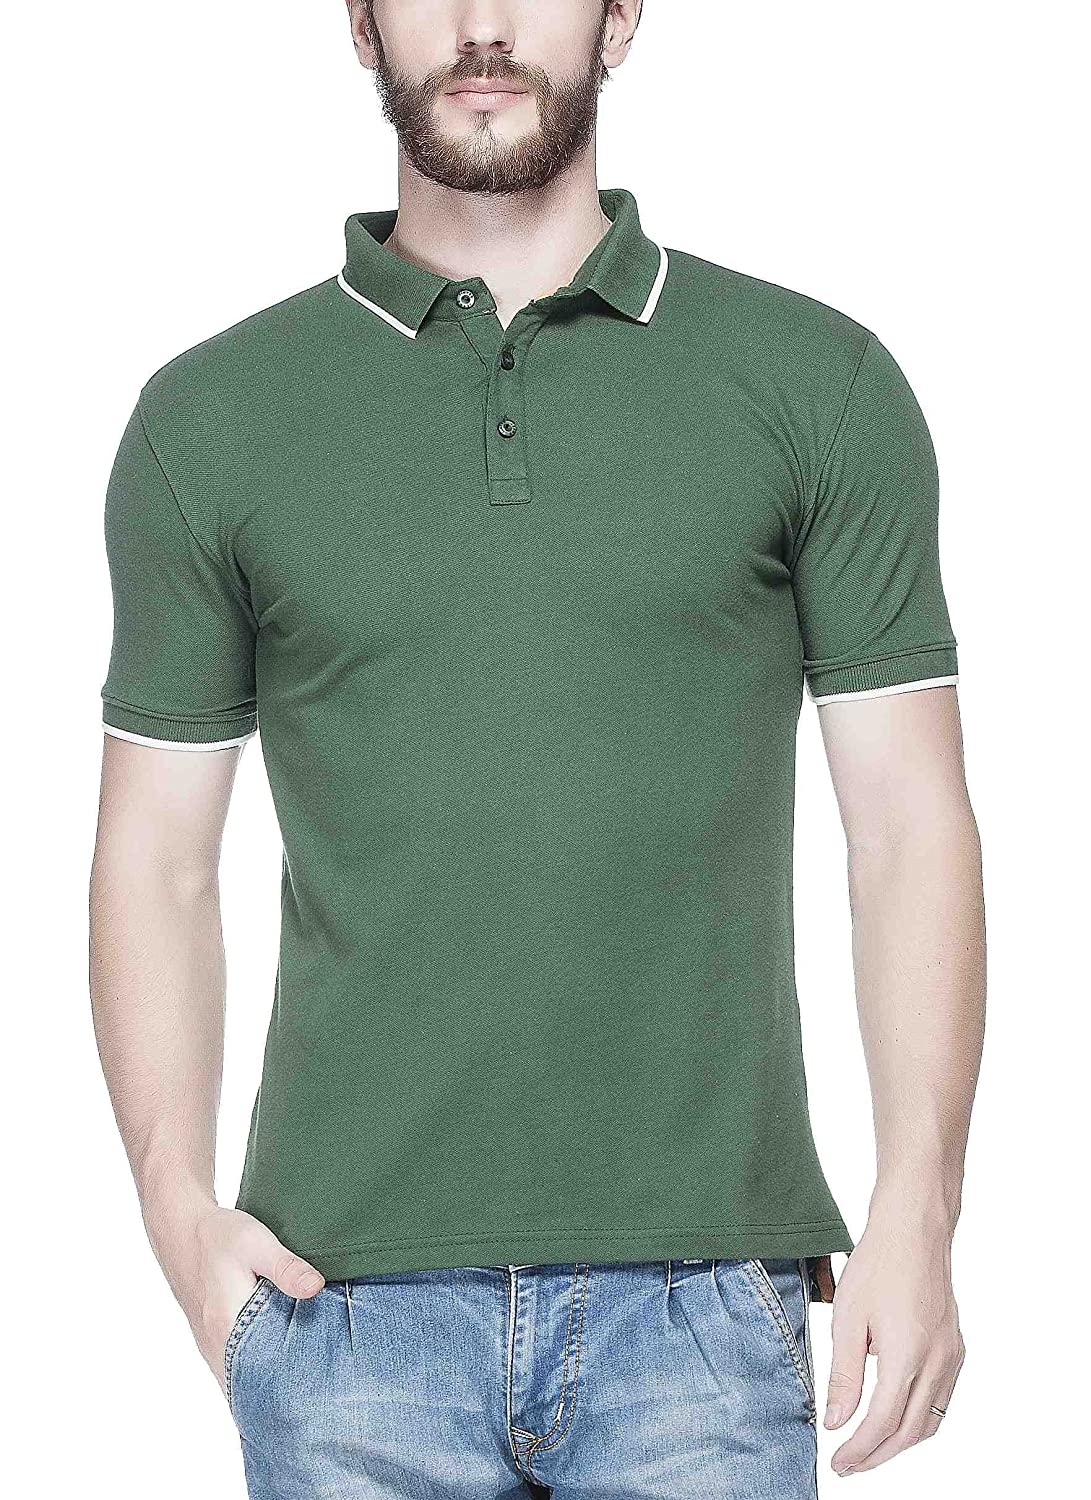 Tinted Men's Matty Polo T-Shirt By Amazon @ Rs.625